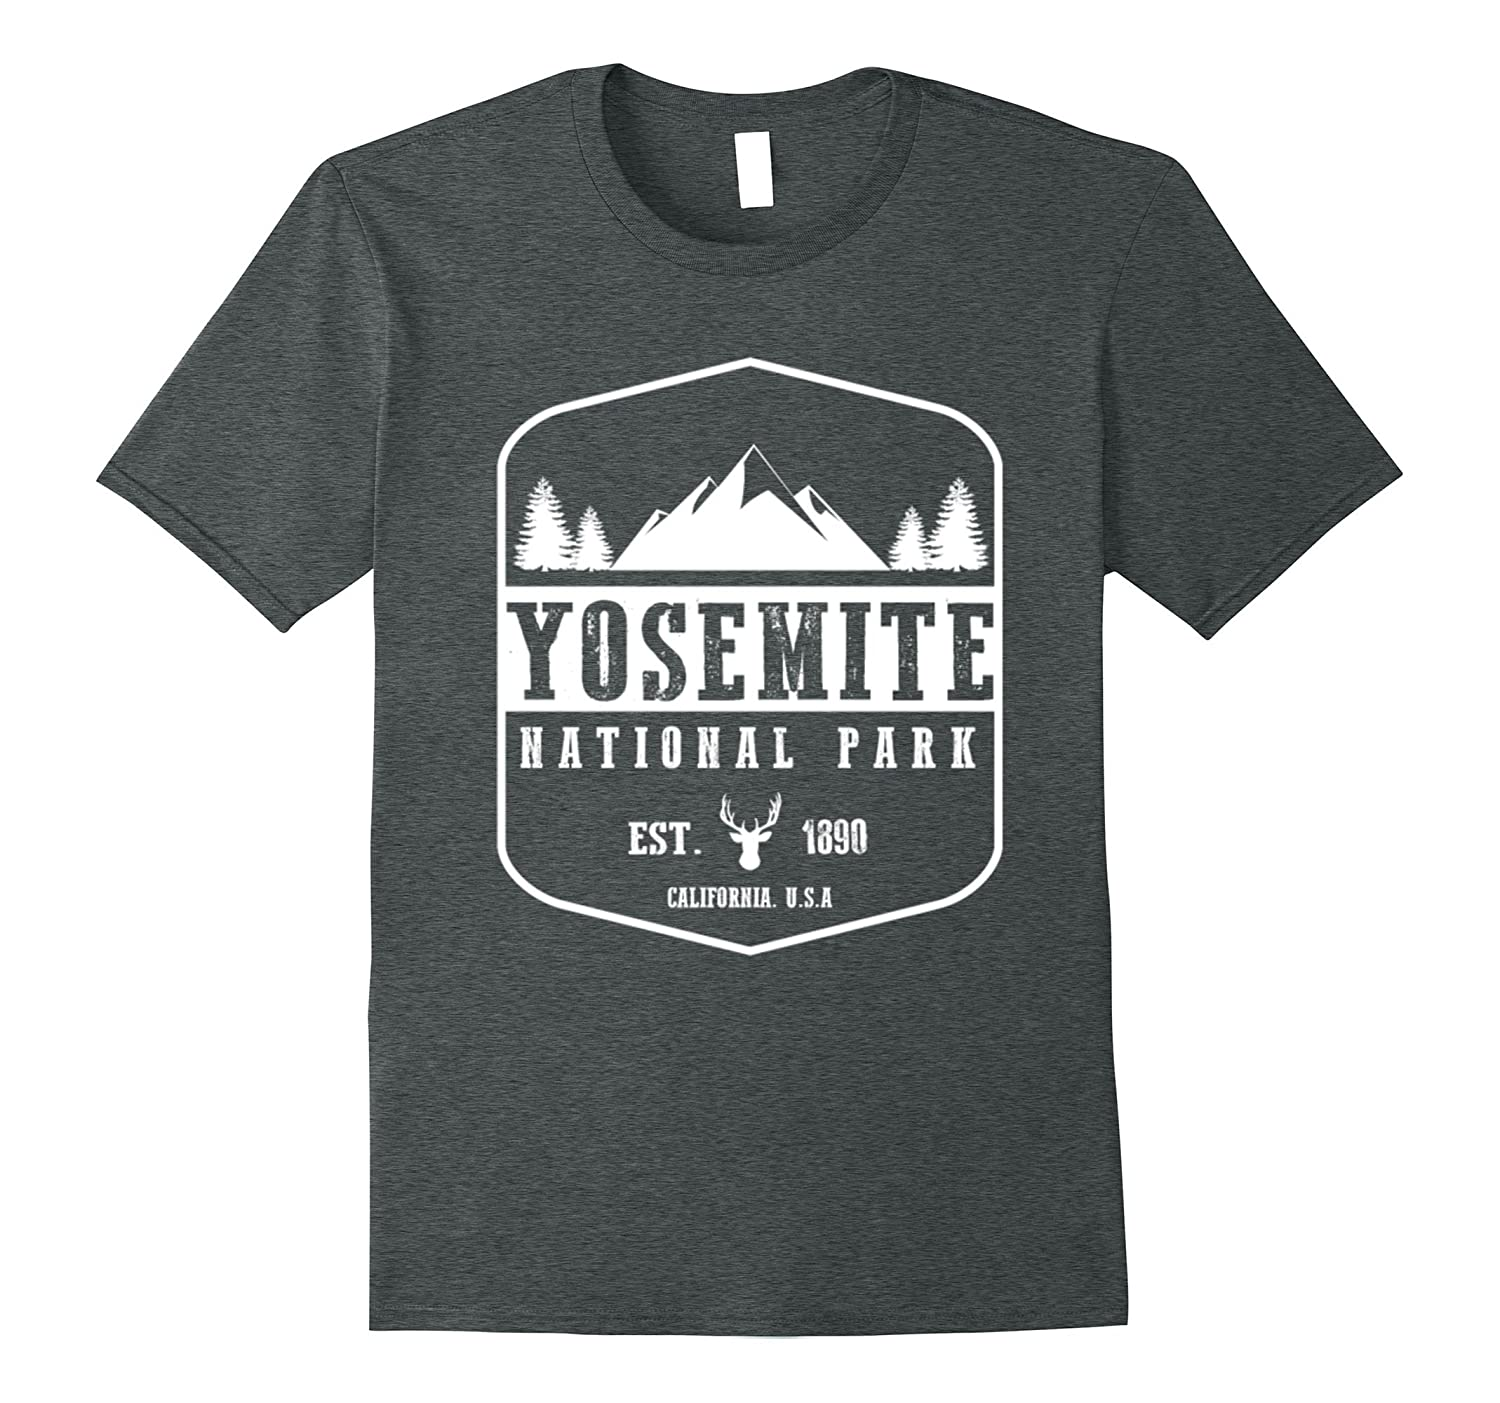 Yosemite National Park Tshirt I Love Hiking Wanderlust-TH